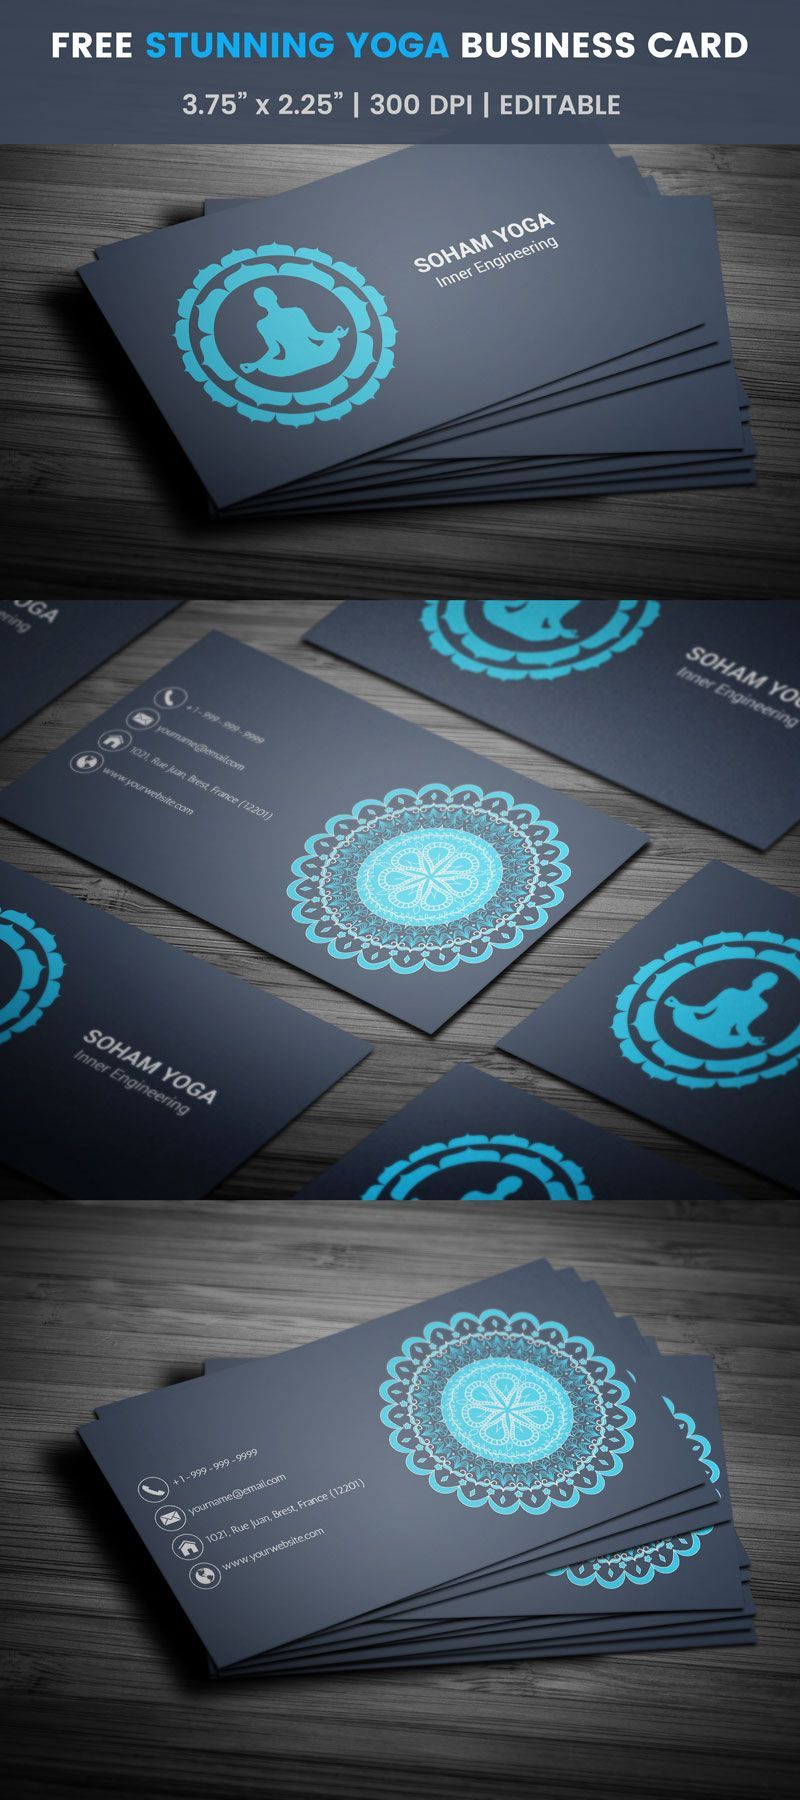 Stunning Yoga Business Card Full Preview Businesscardsonline Zazzle Business Cards Restaurant Business Cards Free Business Card Templates